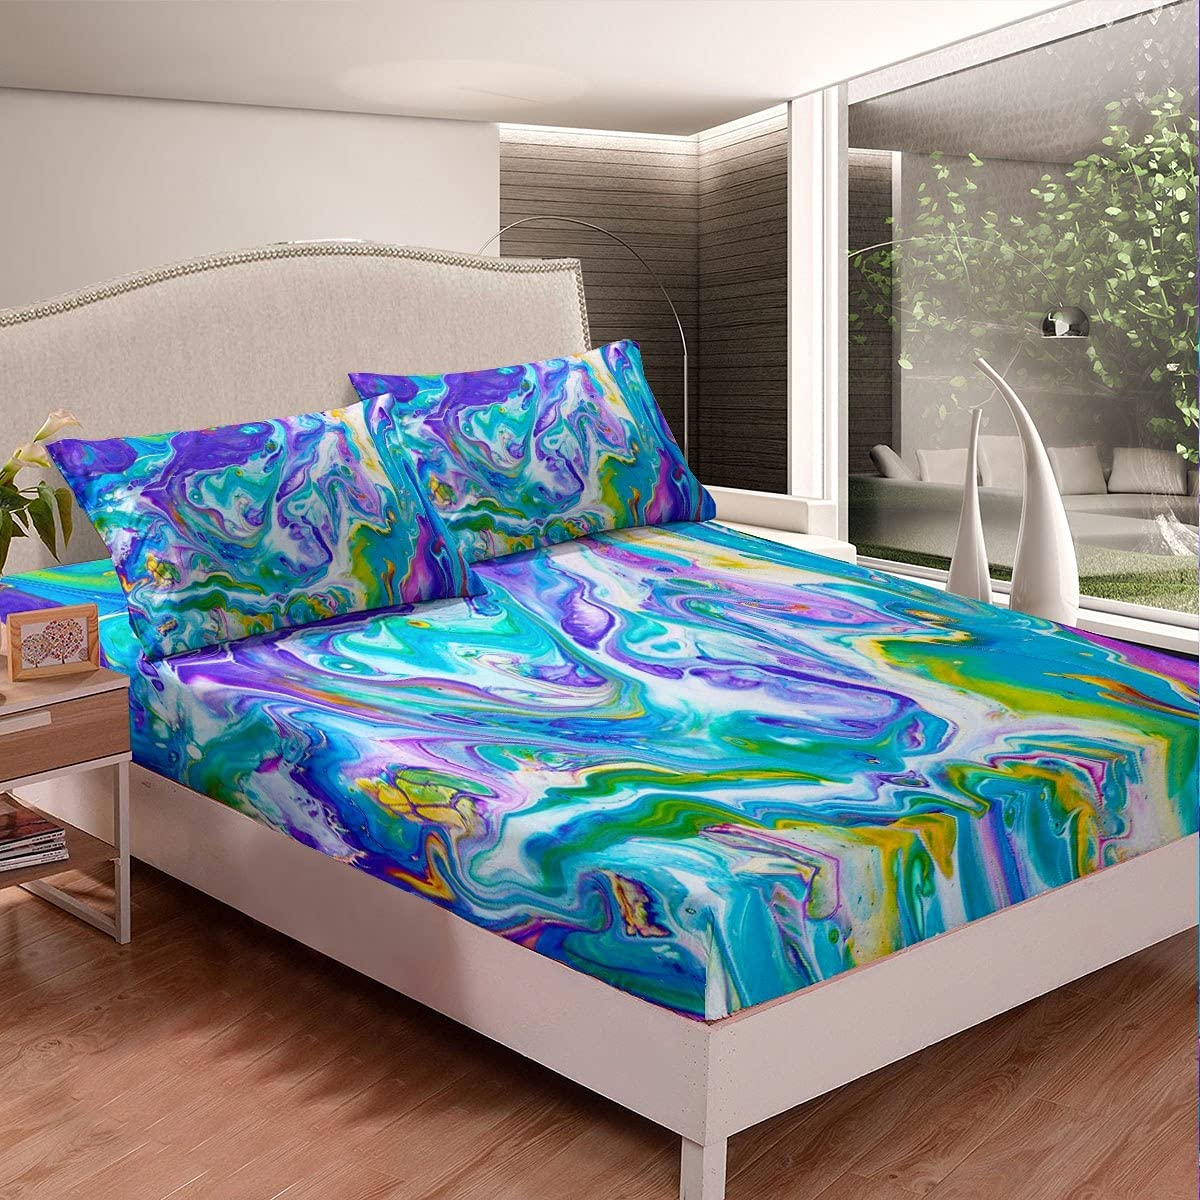 Erosebridal Marble Fitted Bed Sheets New mail order Blue Green Tie Sales Dye Bedding